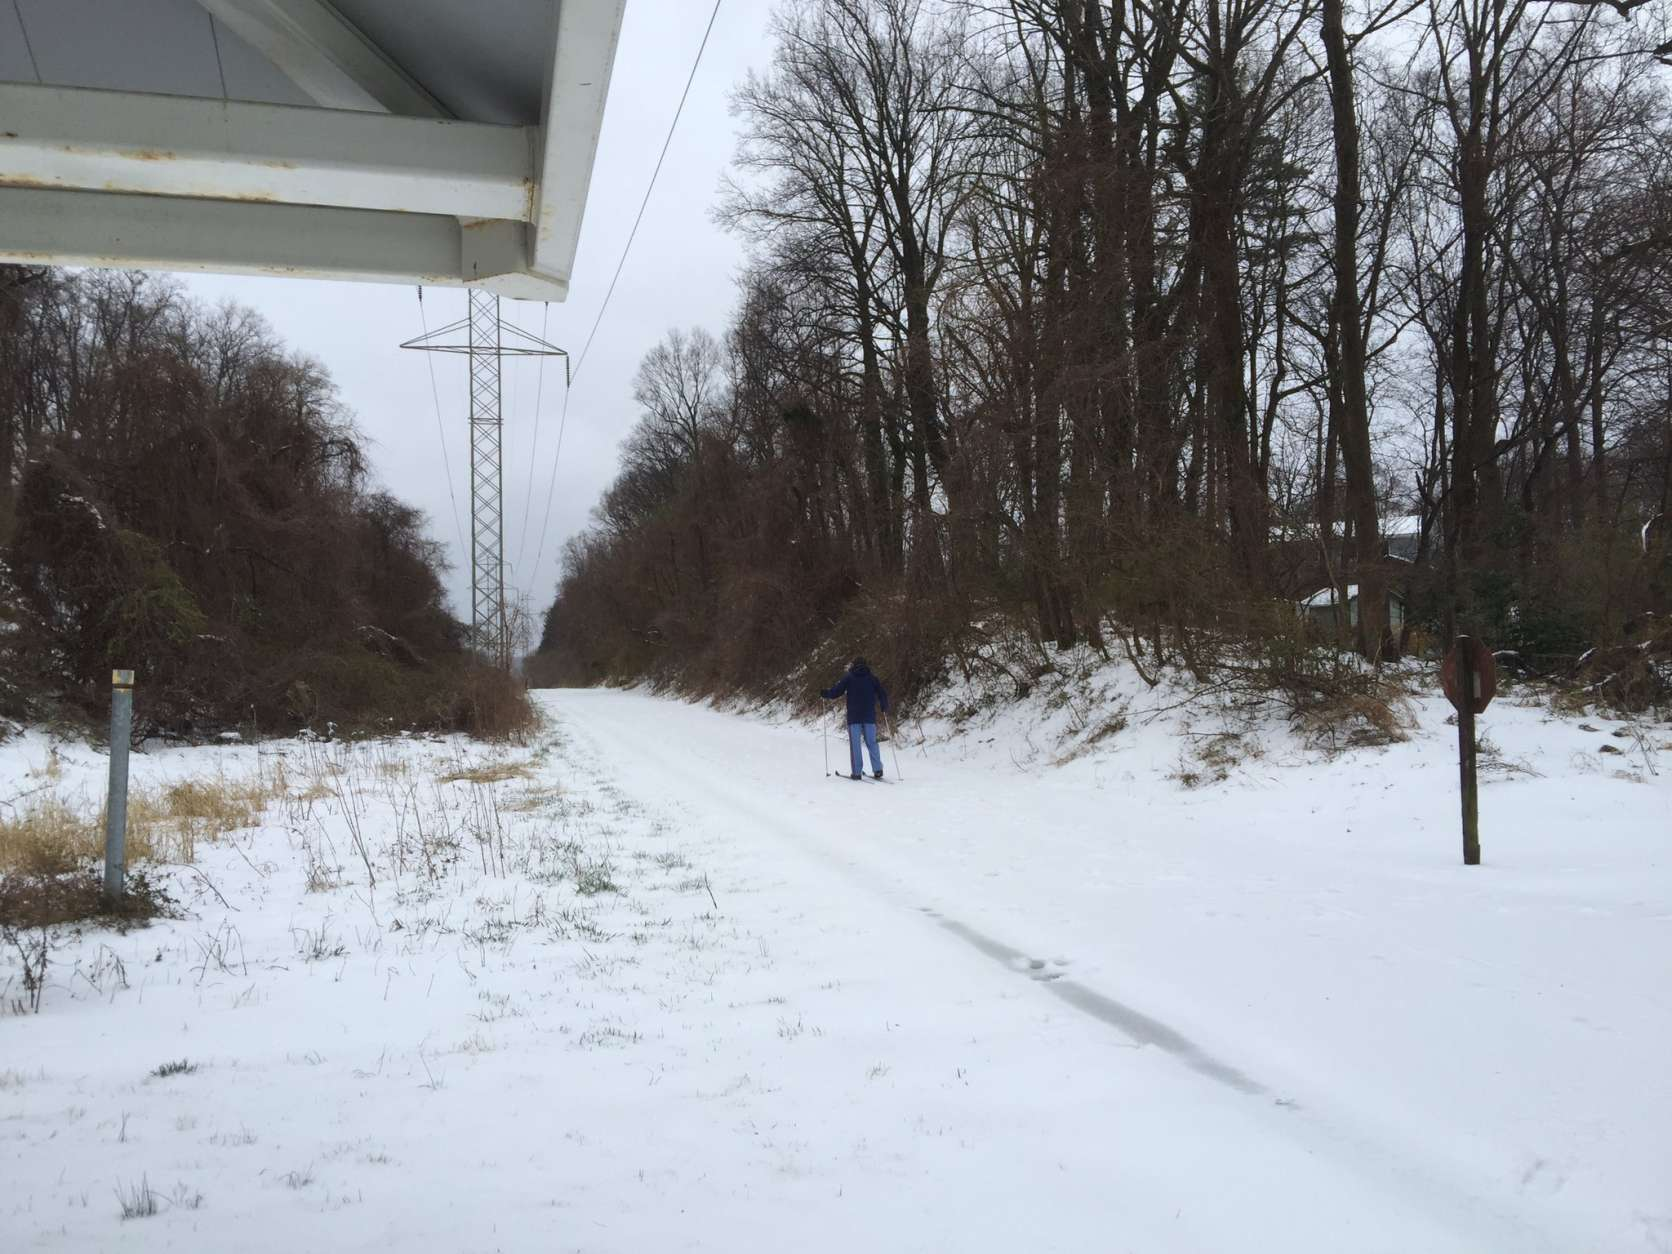 Some people still need to get around despite the snow. Here's how one gentleman is braving The Washington & Old Dominion Trail. (Courtesy Fazli Erdem via Twitter)